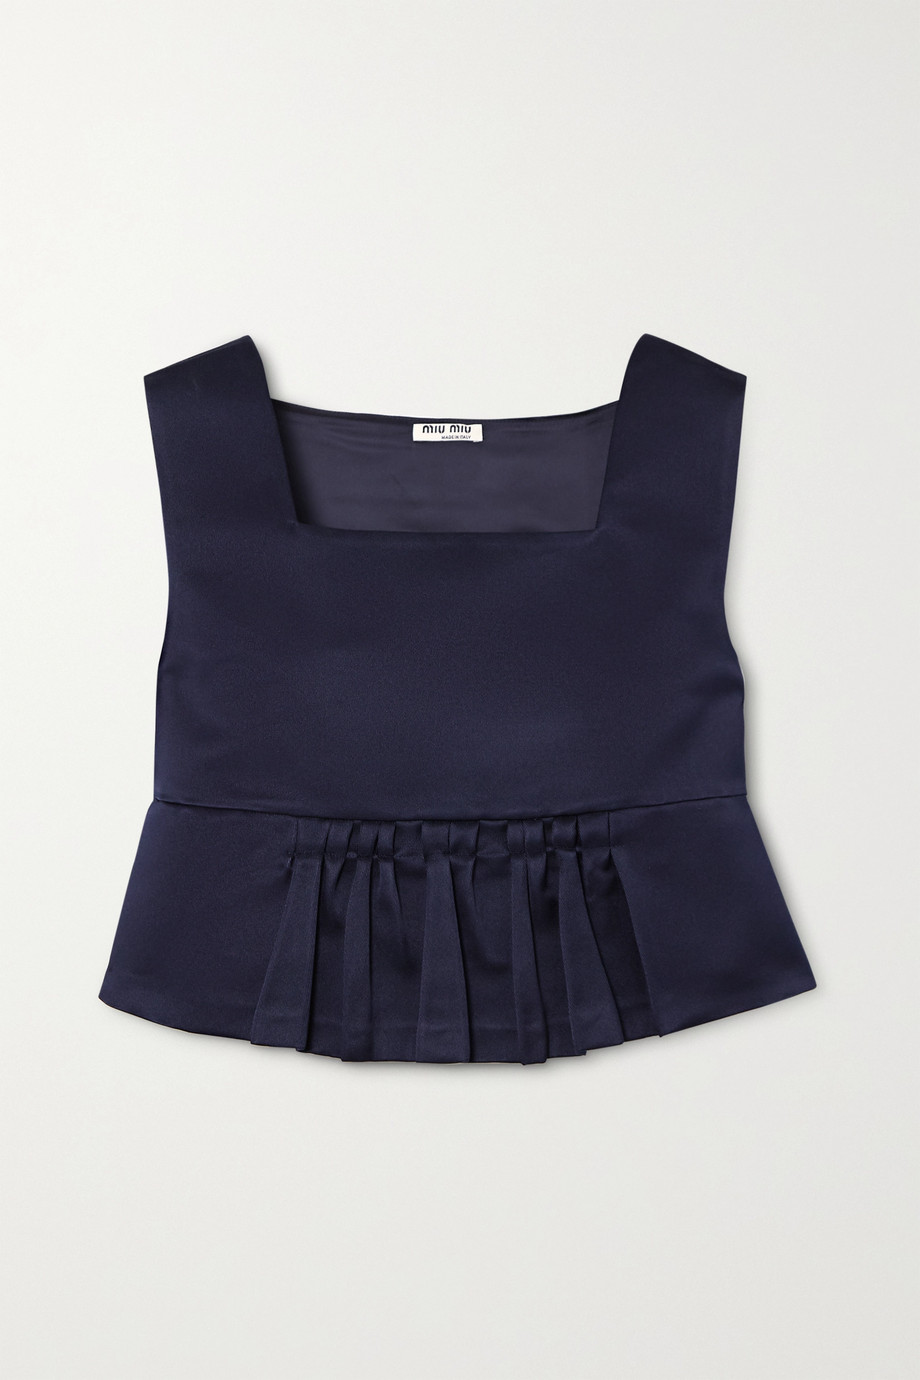 Miu Miu Cropped duchesse silk-satin peplum top